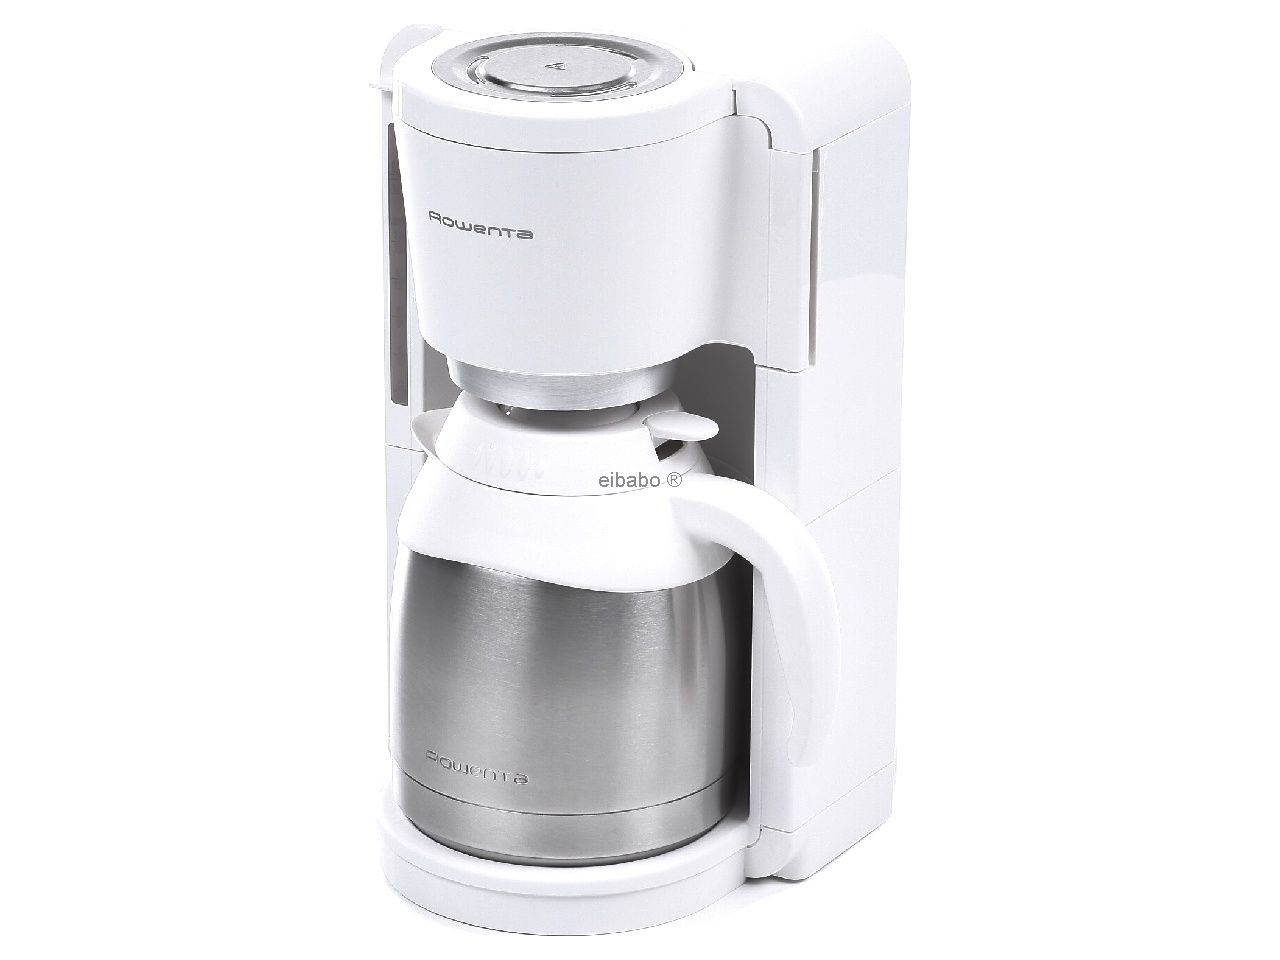 Coffee Maker With Thermos Flask CT 3811 Ws/eds | Rowenta | CT 3811 Ws/eds |  CT3811 | Coffeemaker Eibabo.in